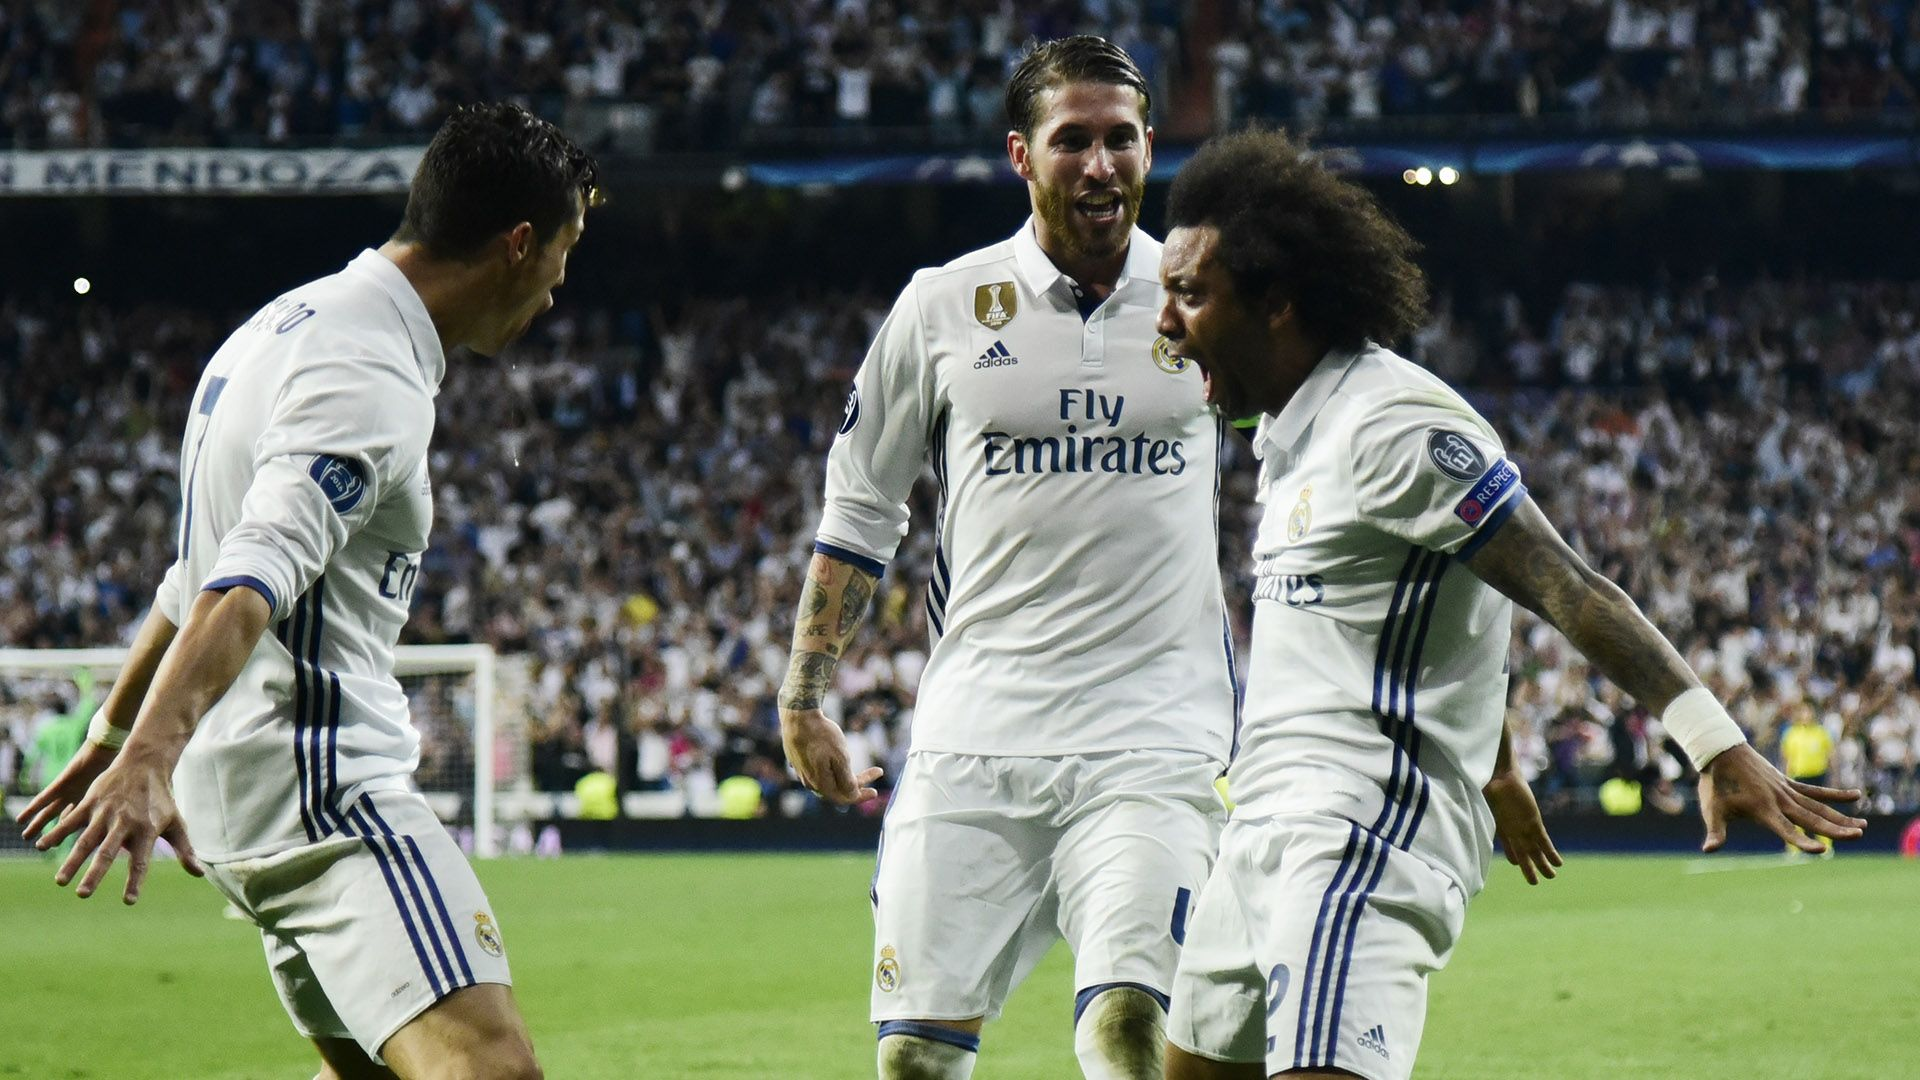 Marcelo HD Images Get top quality Marcelo HD Images for 1920x1080